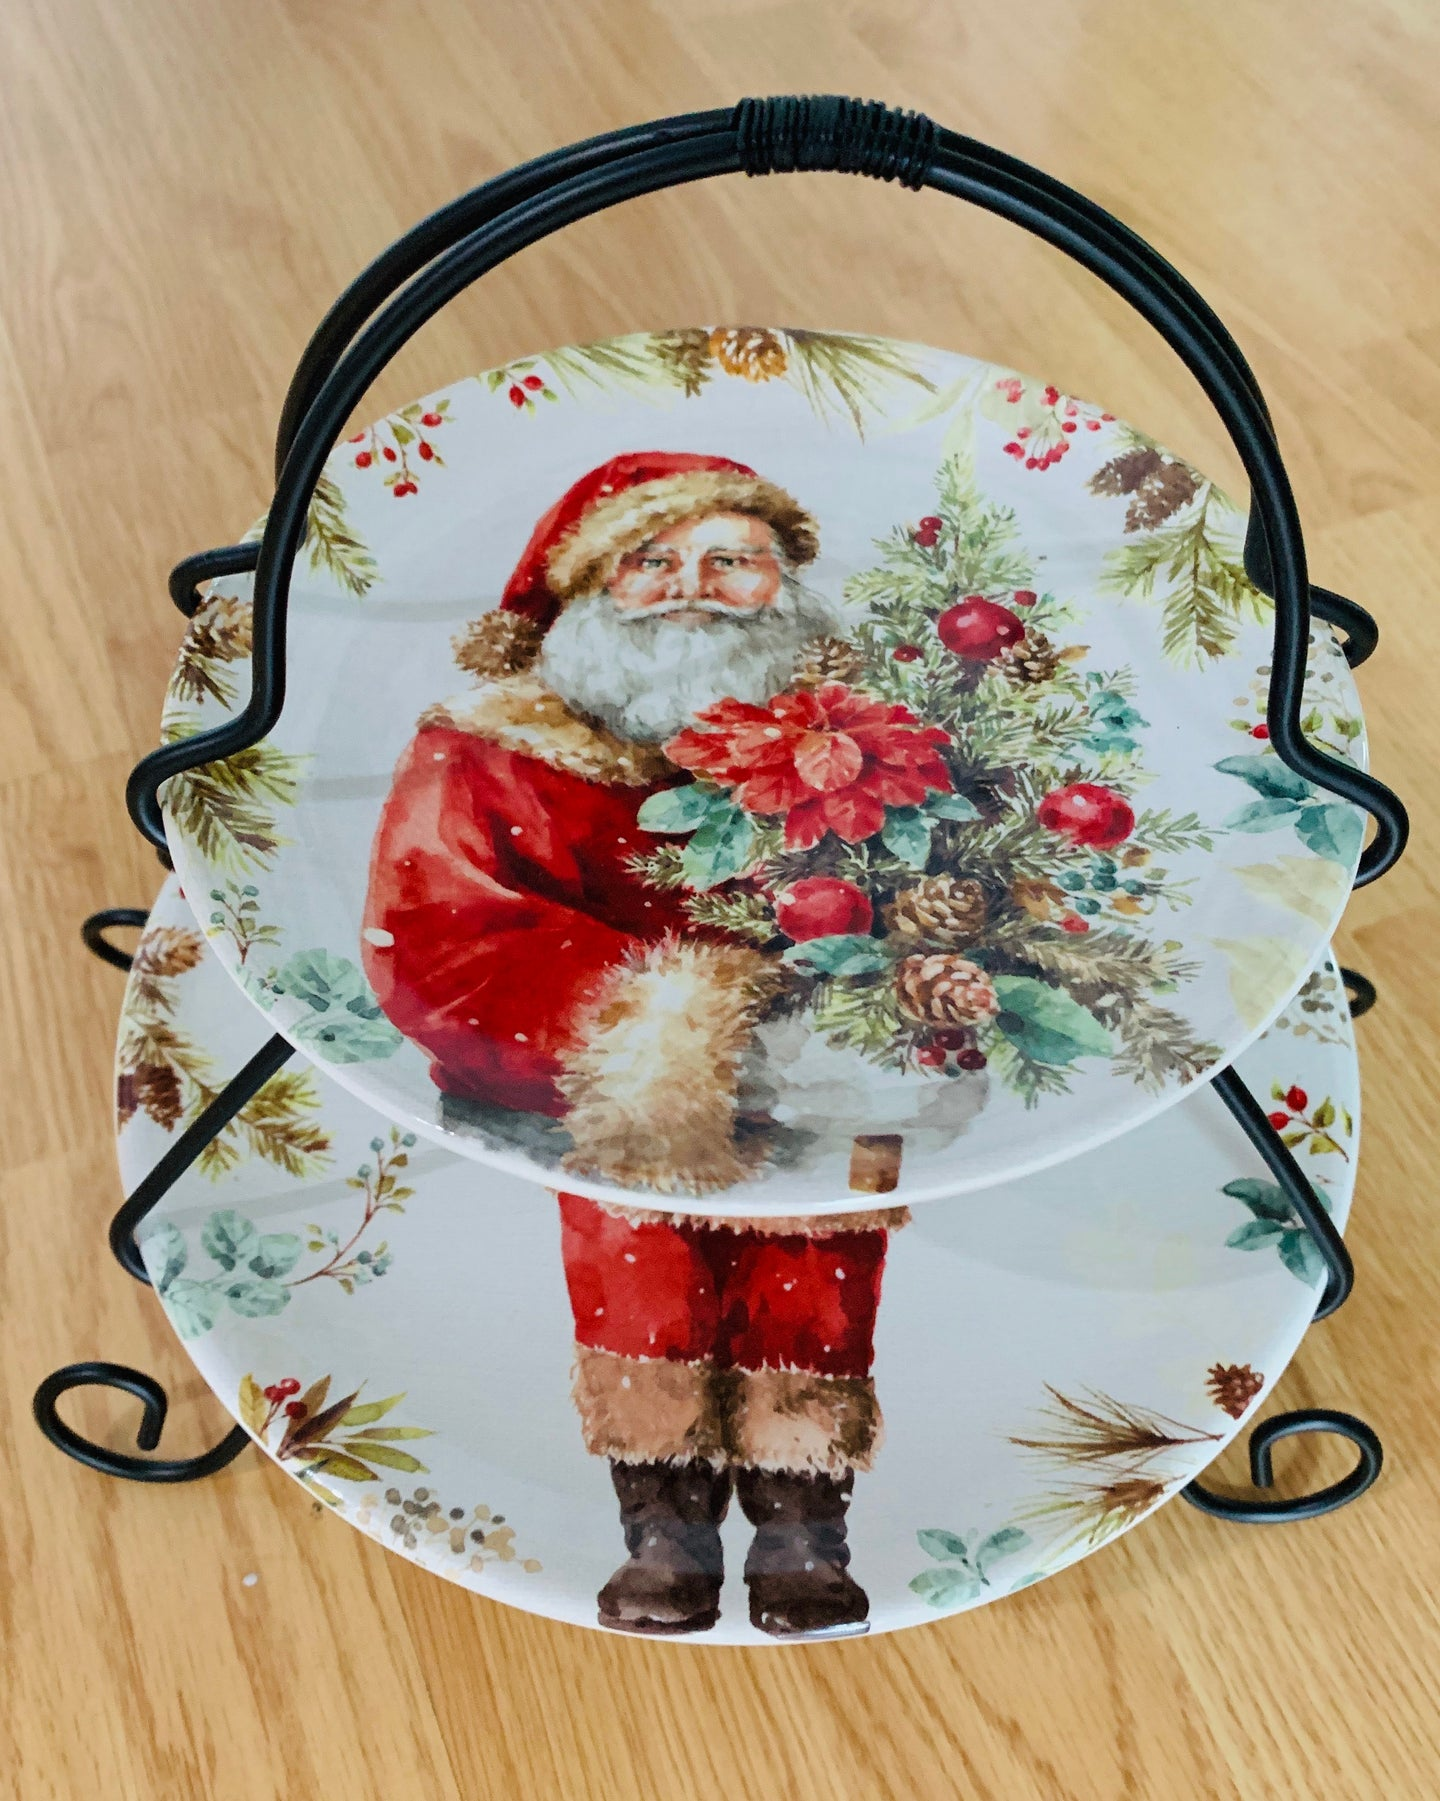 A Christmas Story 2 Tier Server and Plates